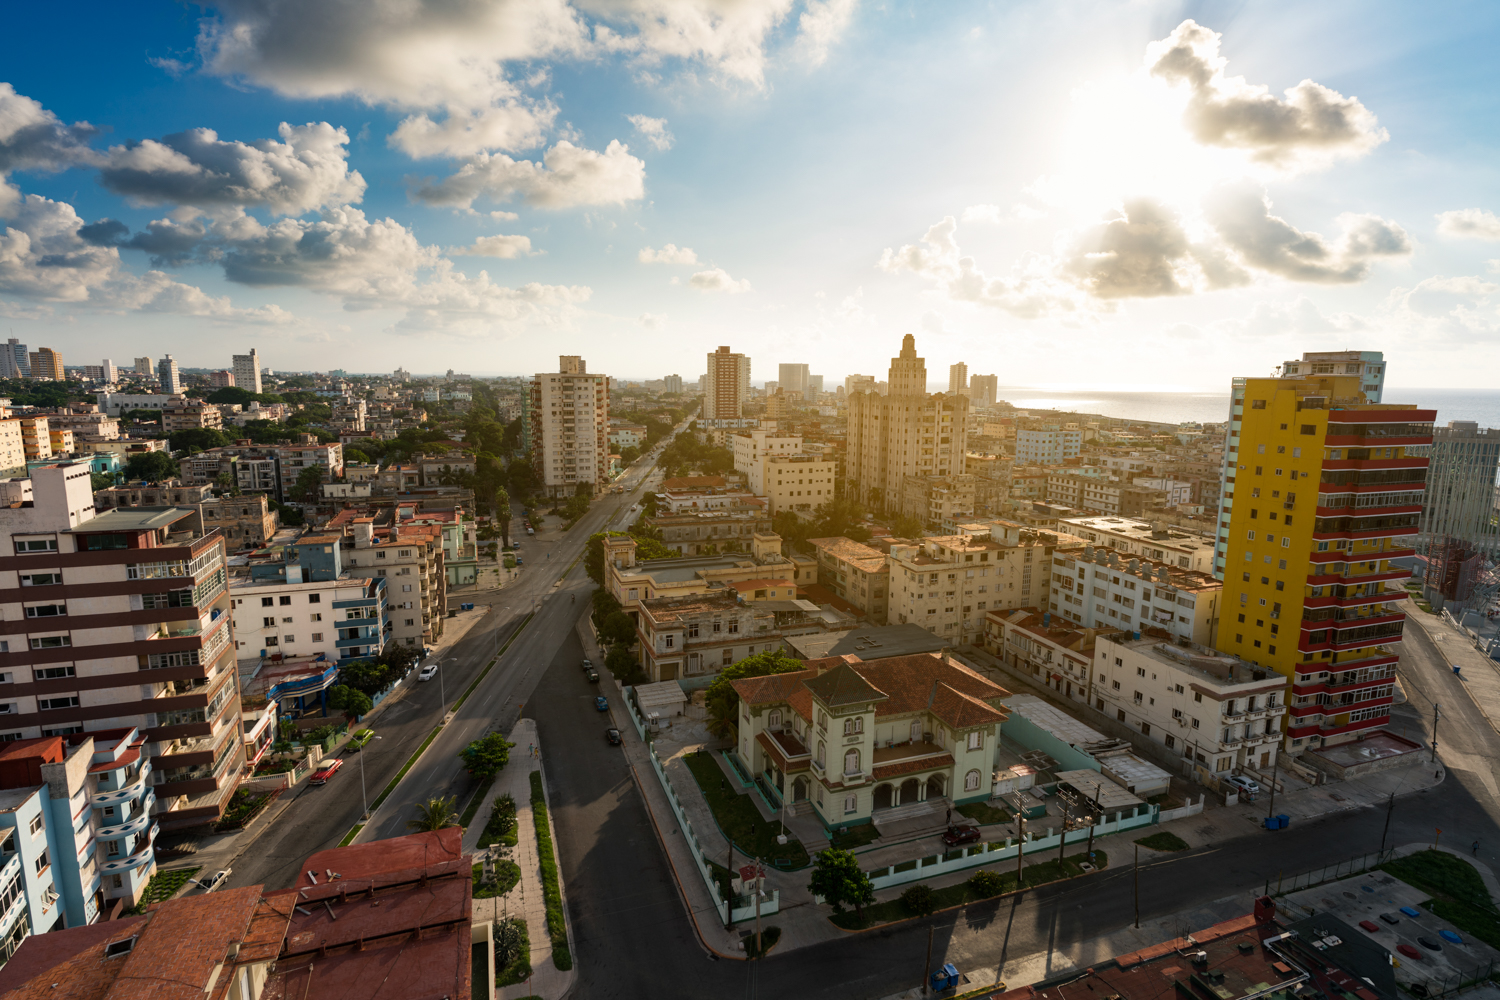 This was the view that greeted us on the first evening of arrival to our Airbnb in Havana.  Sony A7RII, Zeiss Batis 18mm f/2.8 (iso 50, f/5.6, 1/400s)